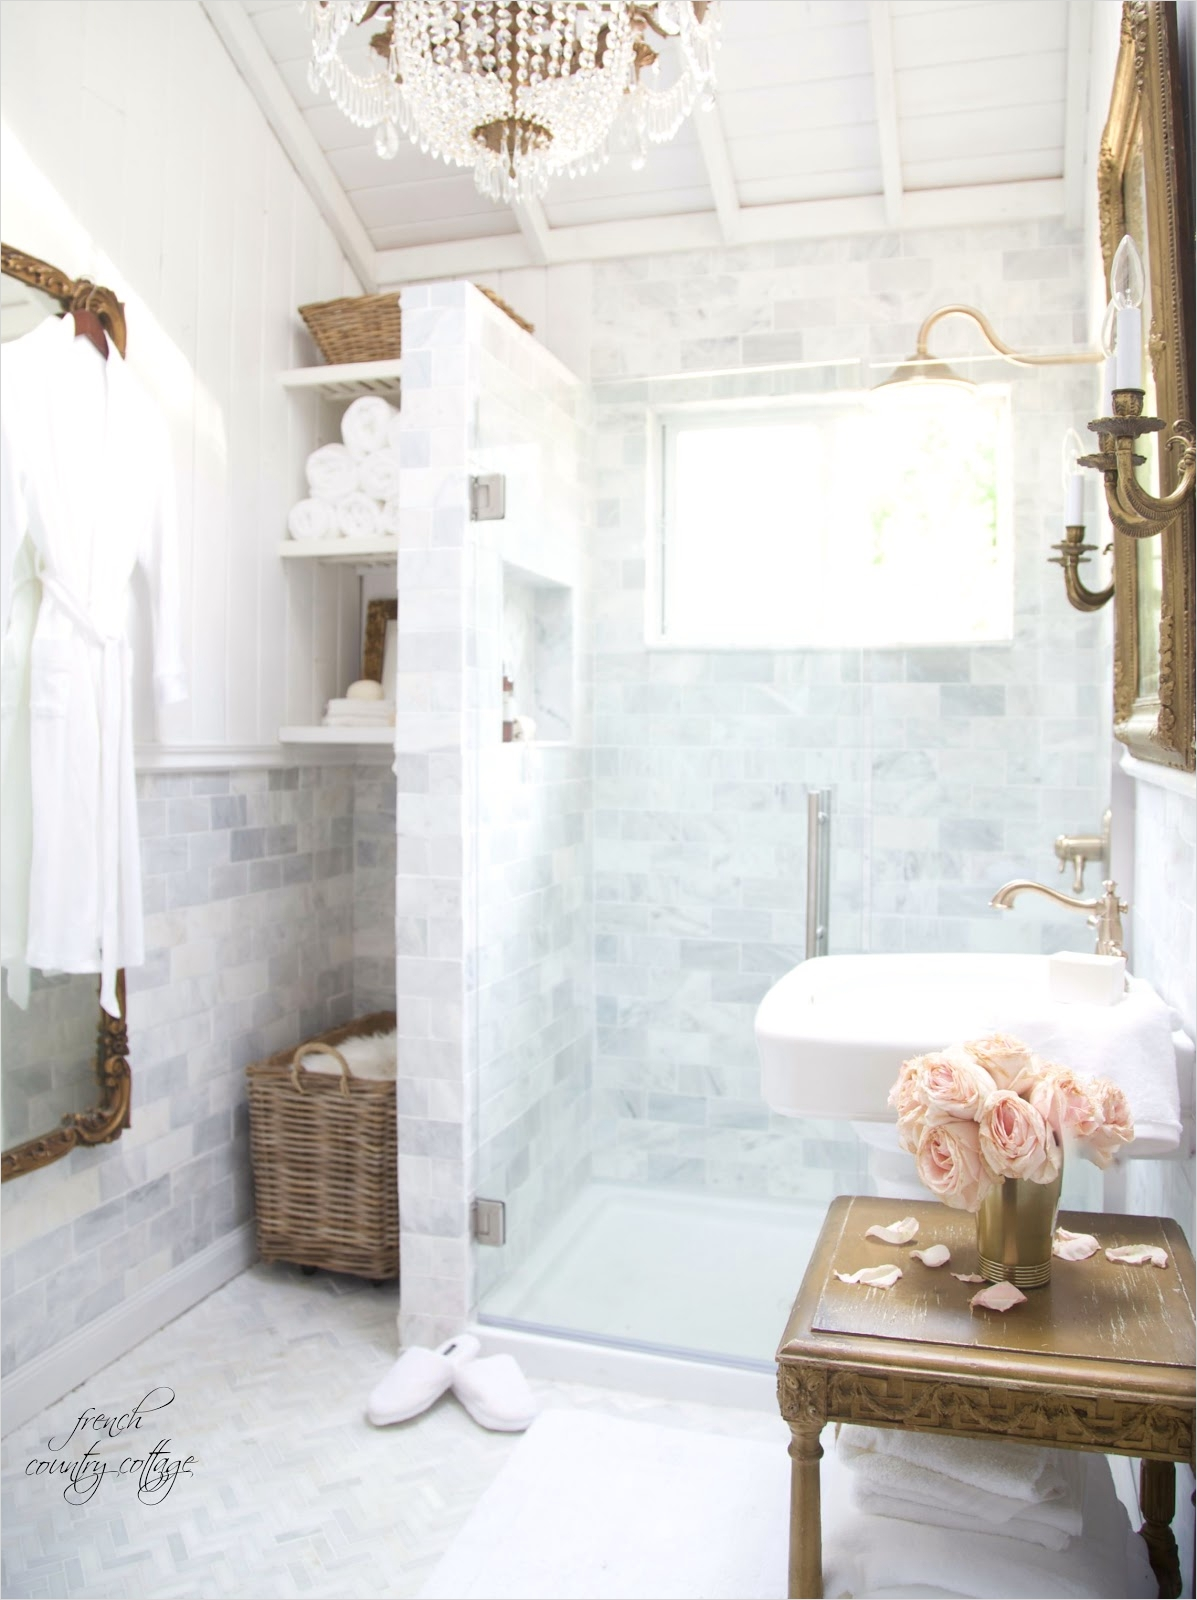 40 Stunning French Country Small Bathroom 14 French Cottage Bathroom Renovation Reveal French Country Cottage 1